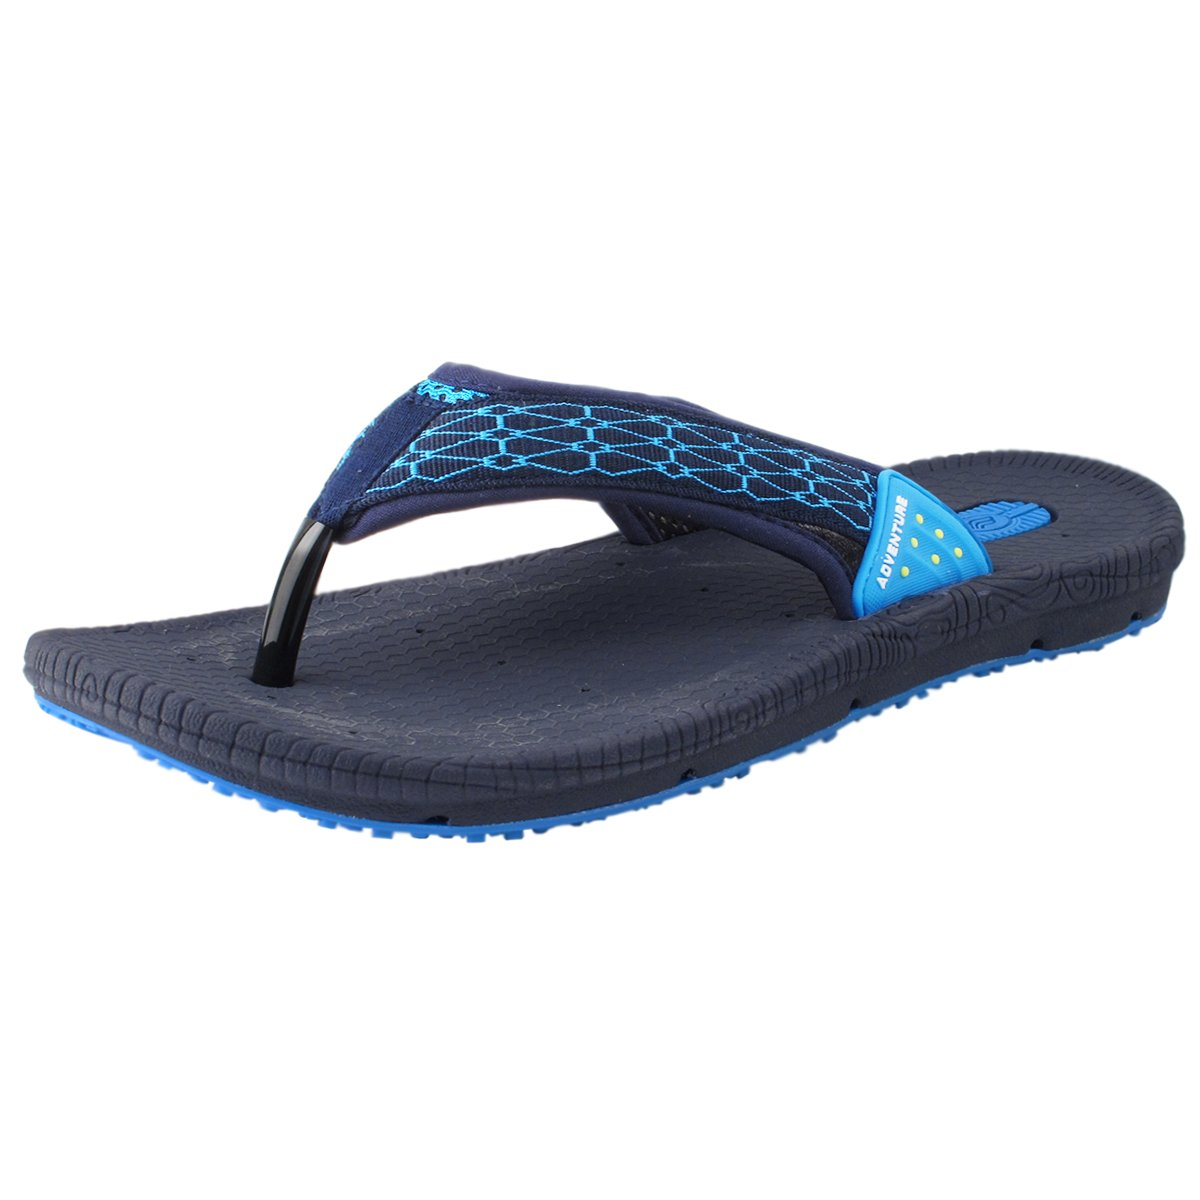 Gold Pigeon Shoes GP5842 Unisex Flip Flops: 7504 Navy Blue, EU41